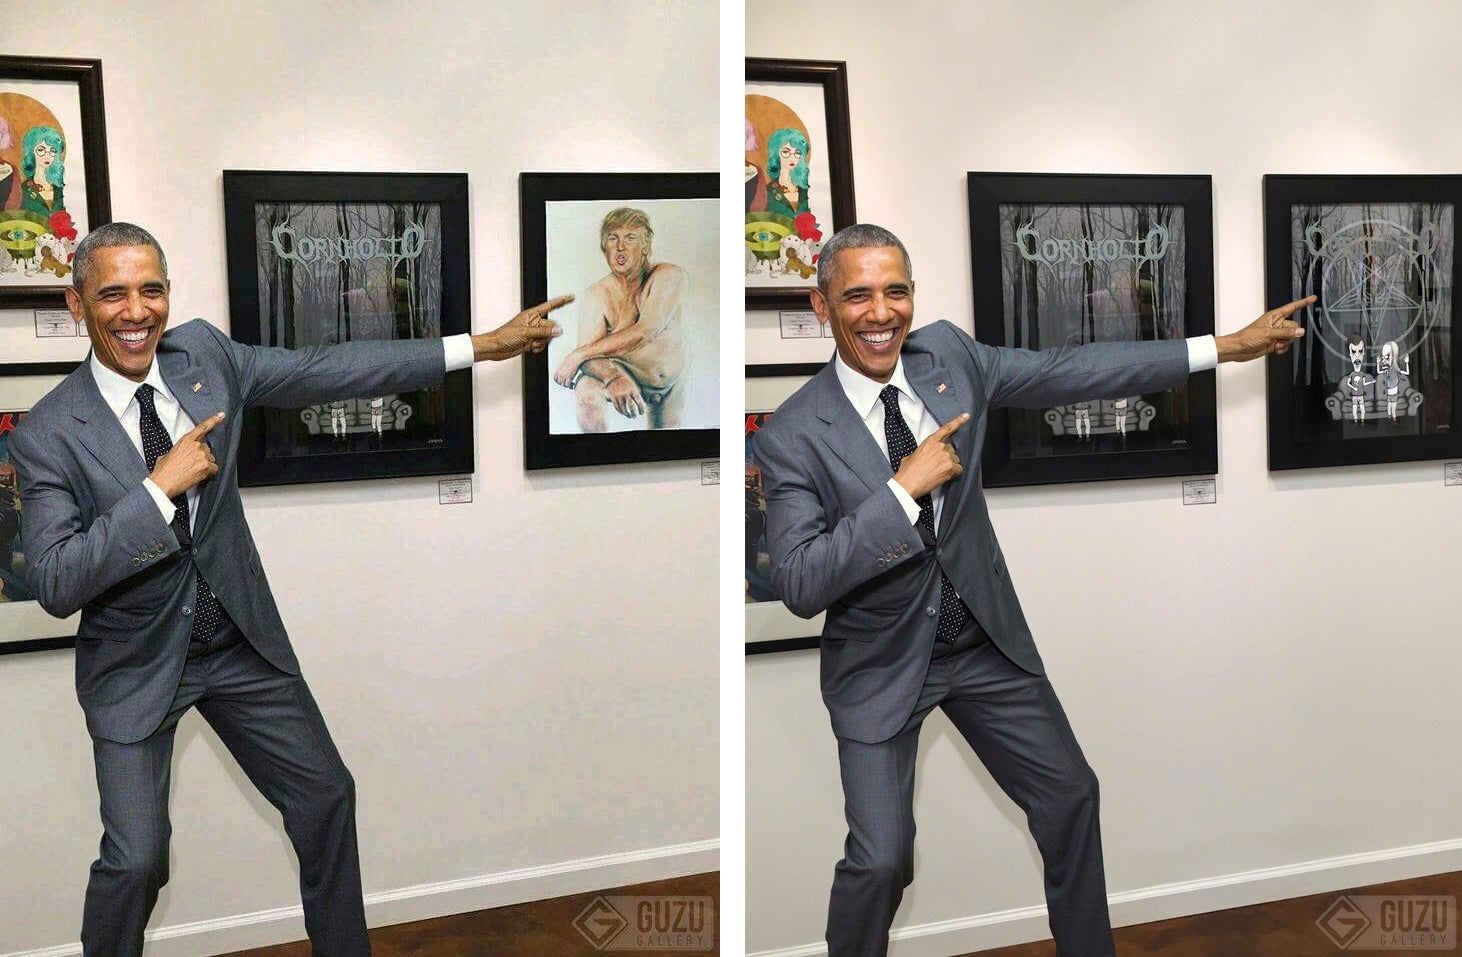 That Photo of Obama Pointing at a Naked Portrait of Trump is Totally Fake (NSFW)